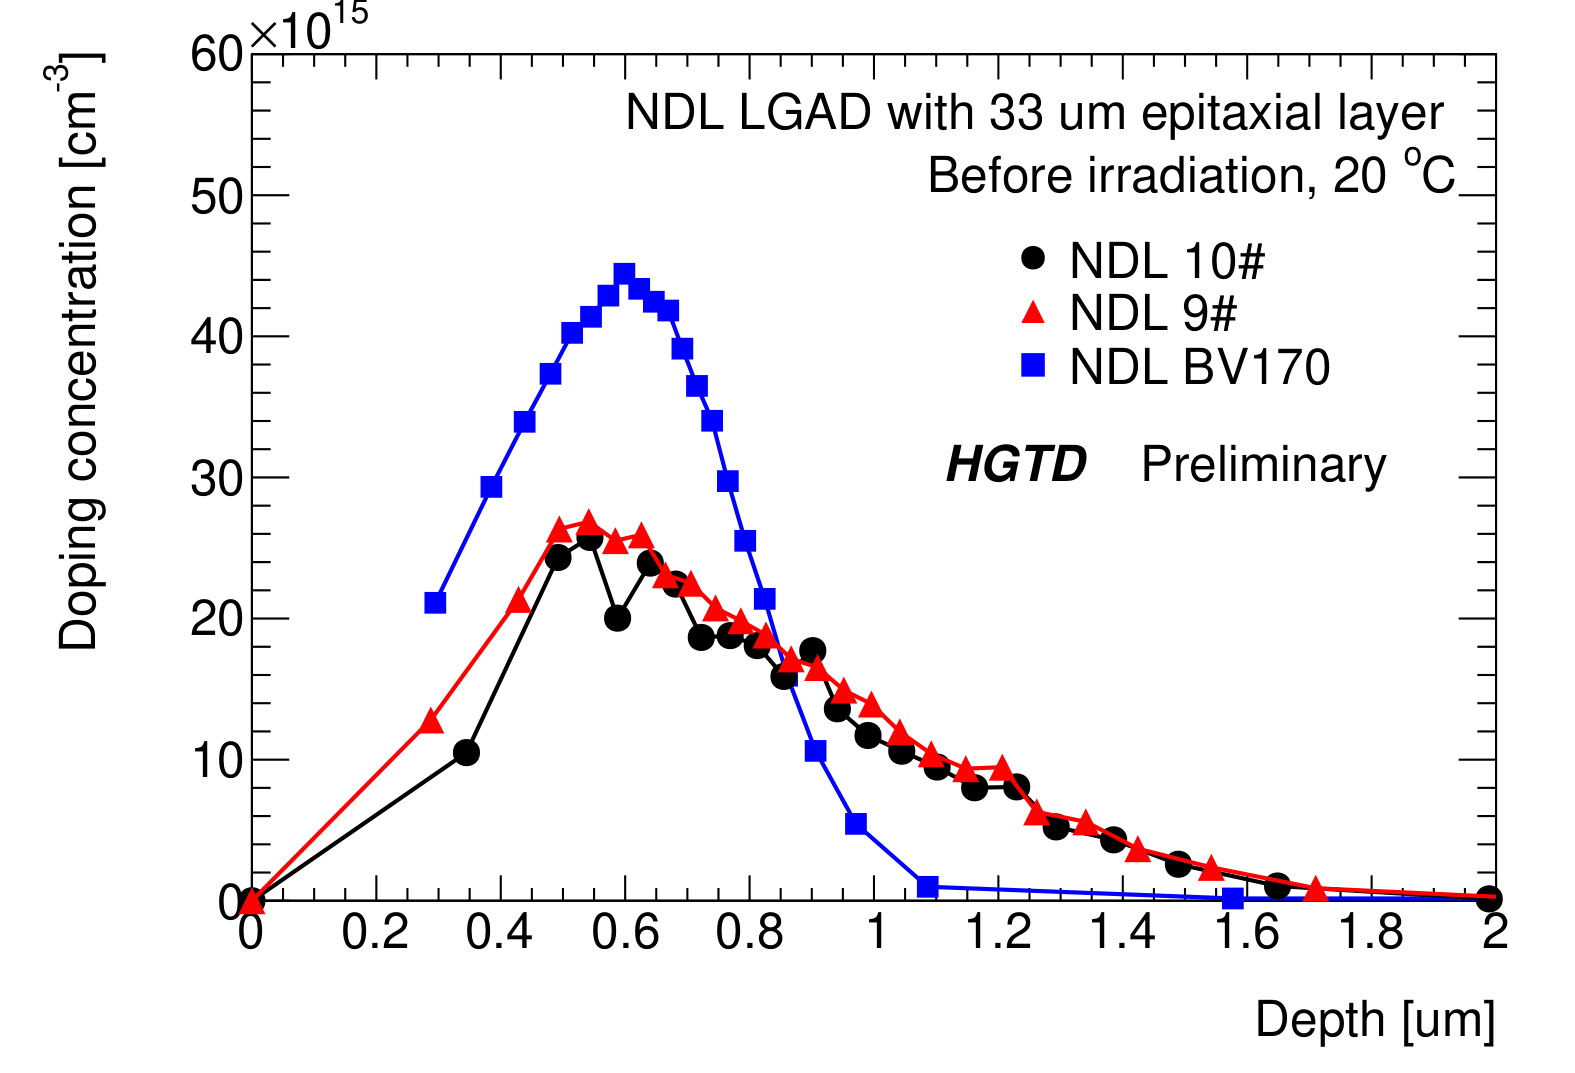 figure4_DopingBeforeIrradiationE1-1.png